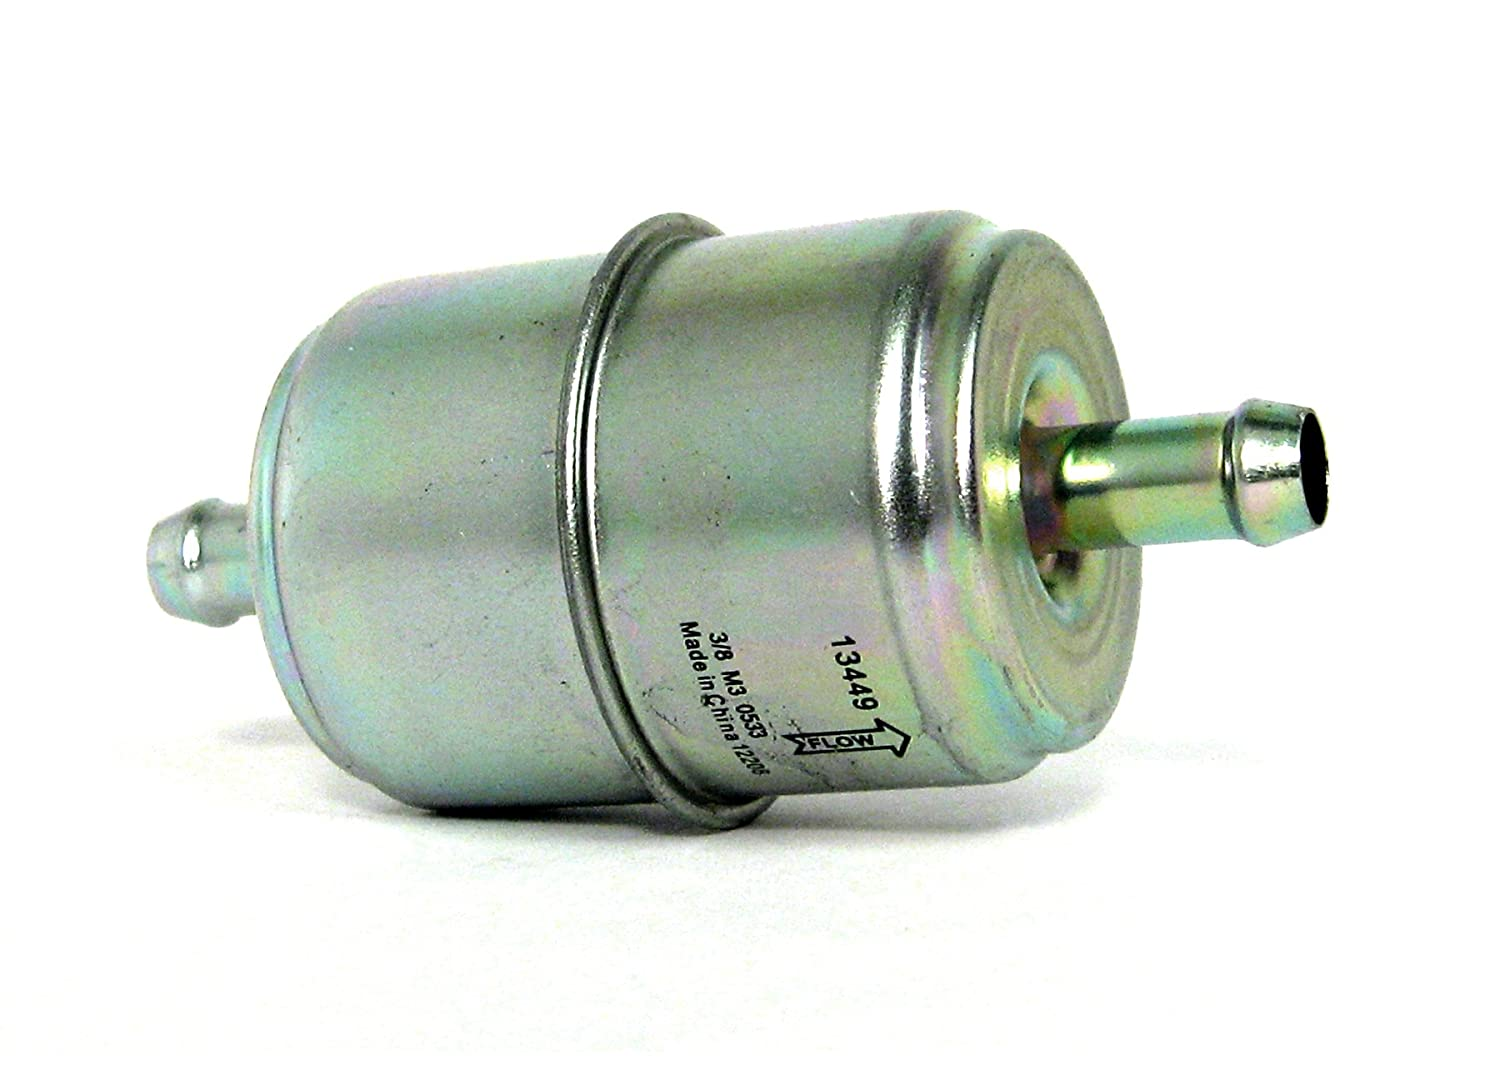 Acdelco Gf61p Professional Fuel Filter Automotive 1990 Jeep Wrangler